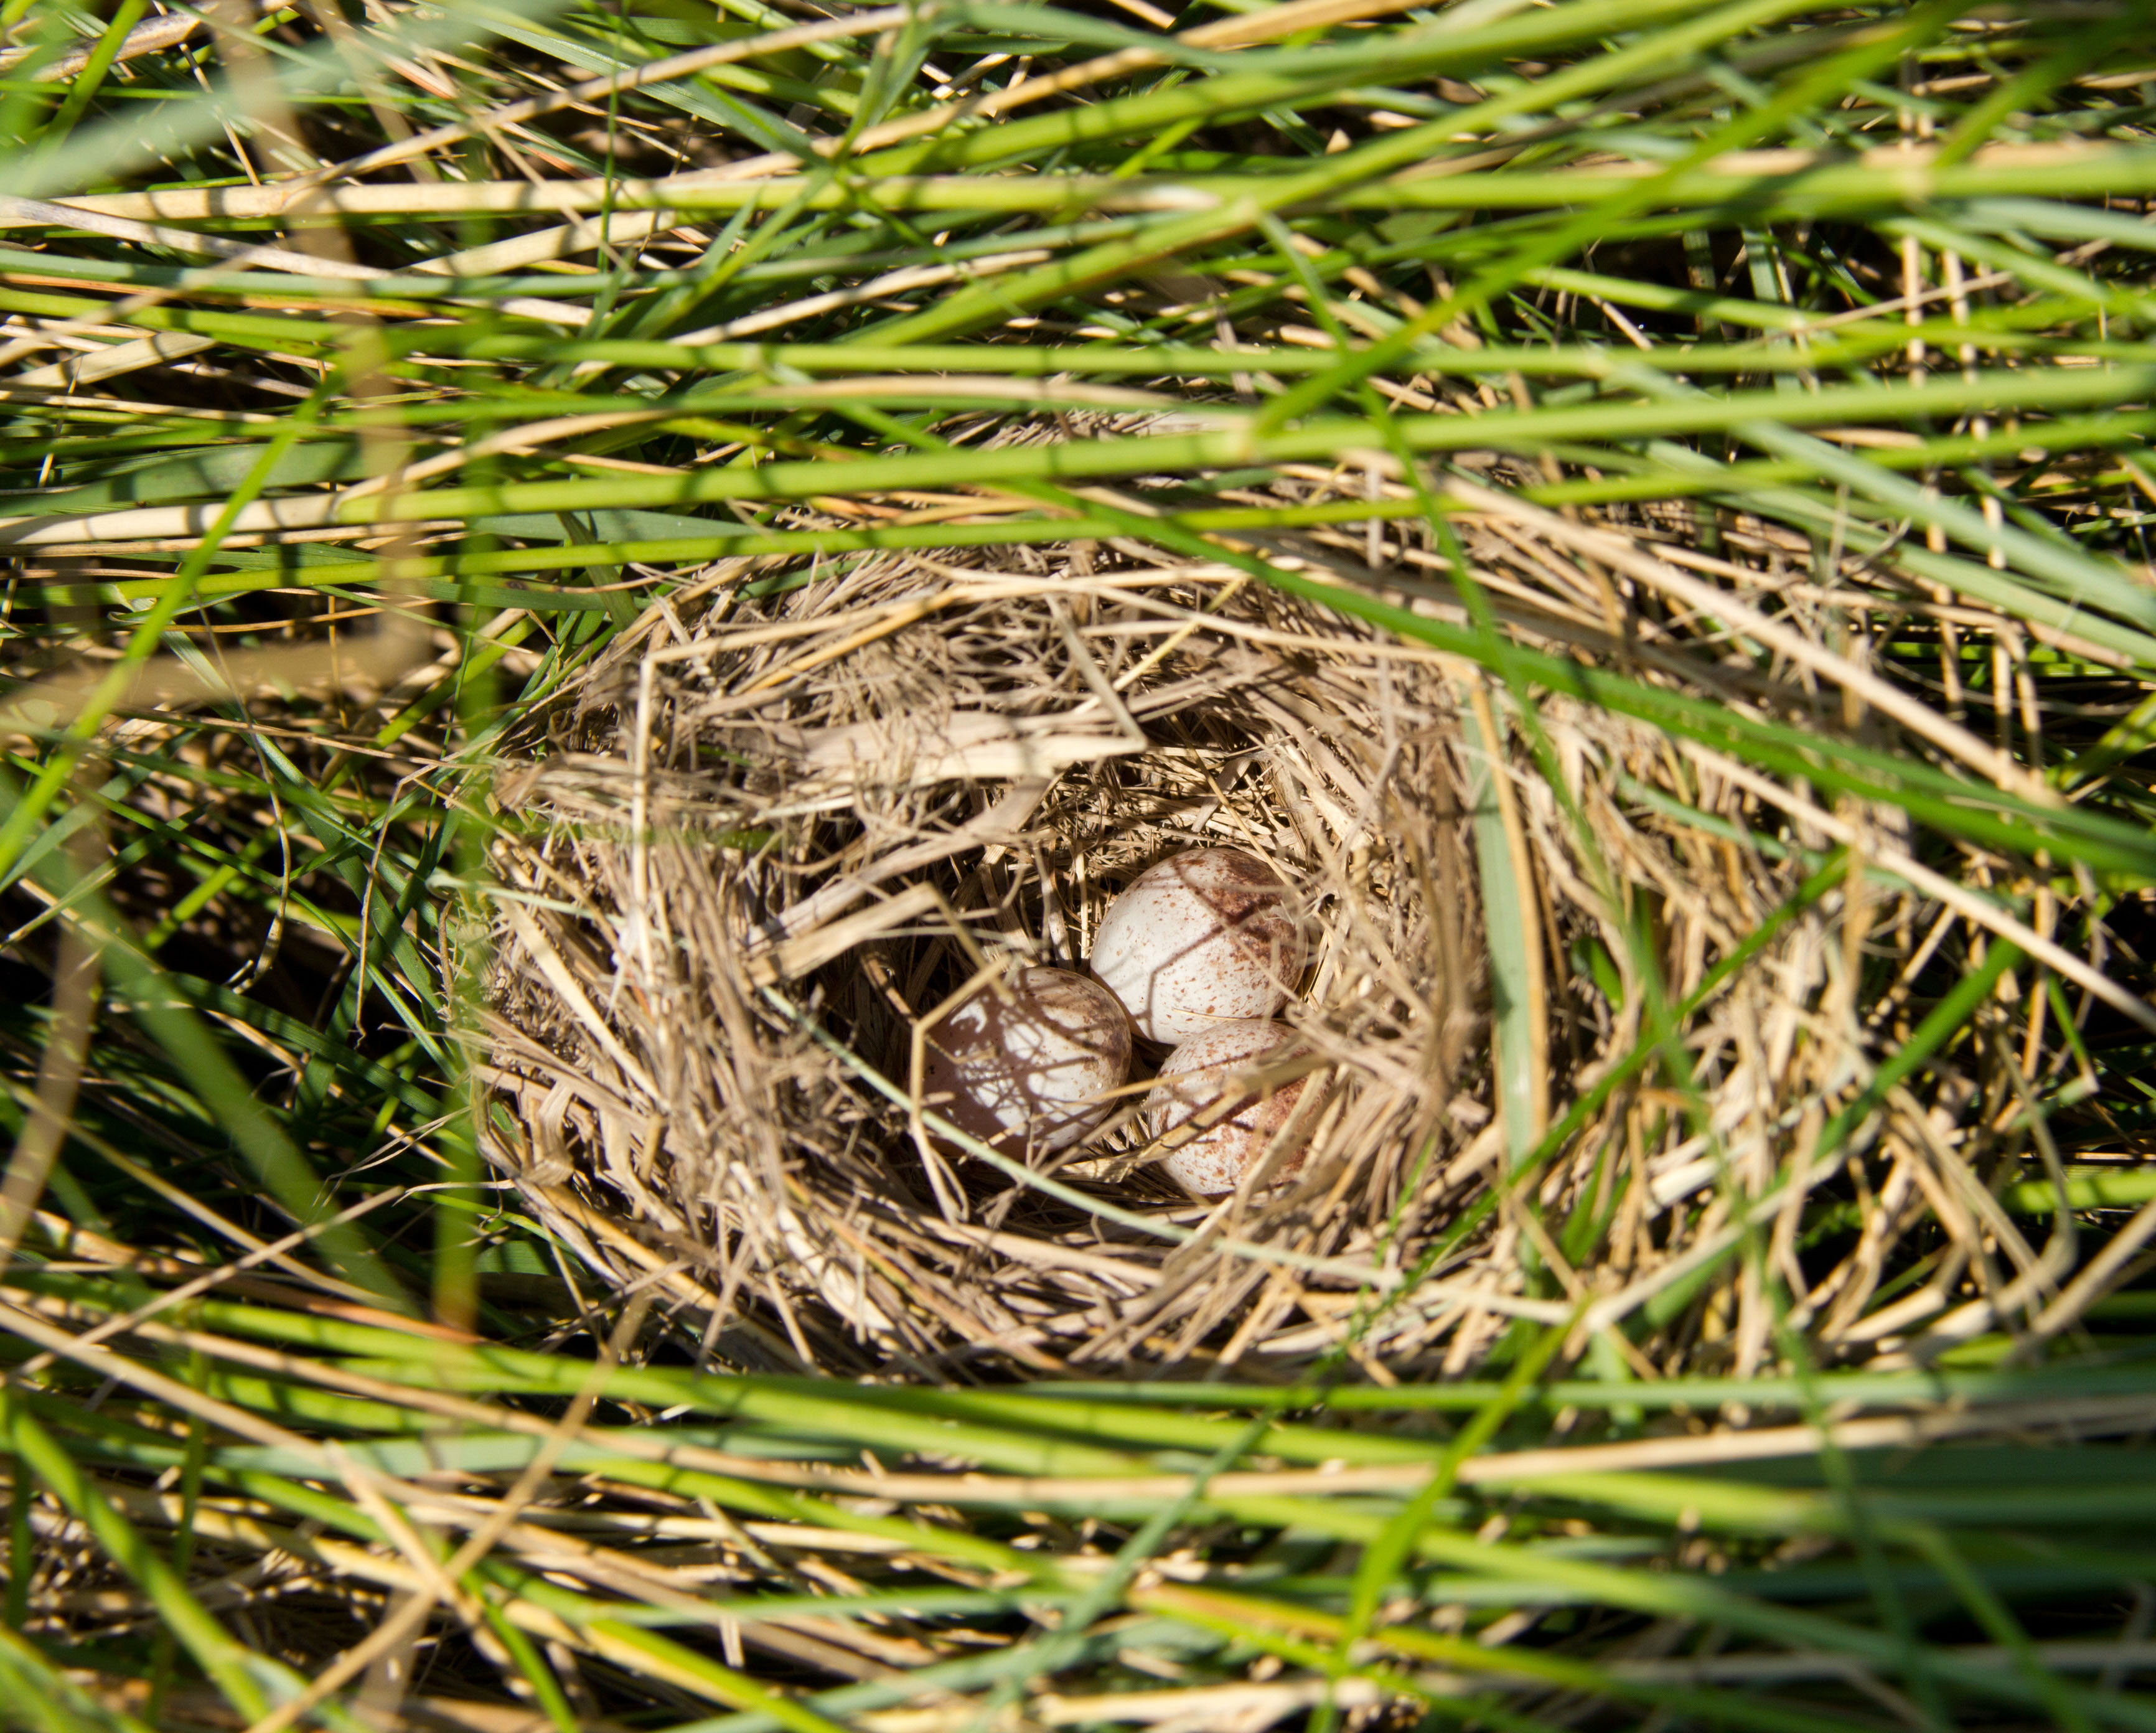 messy nest of the sparrow1.jpg thumbnail